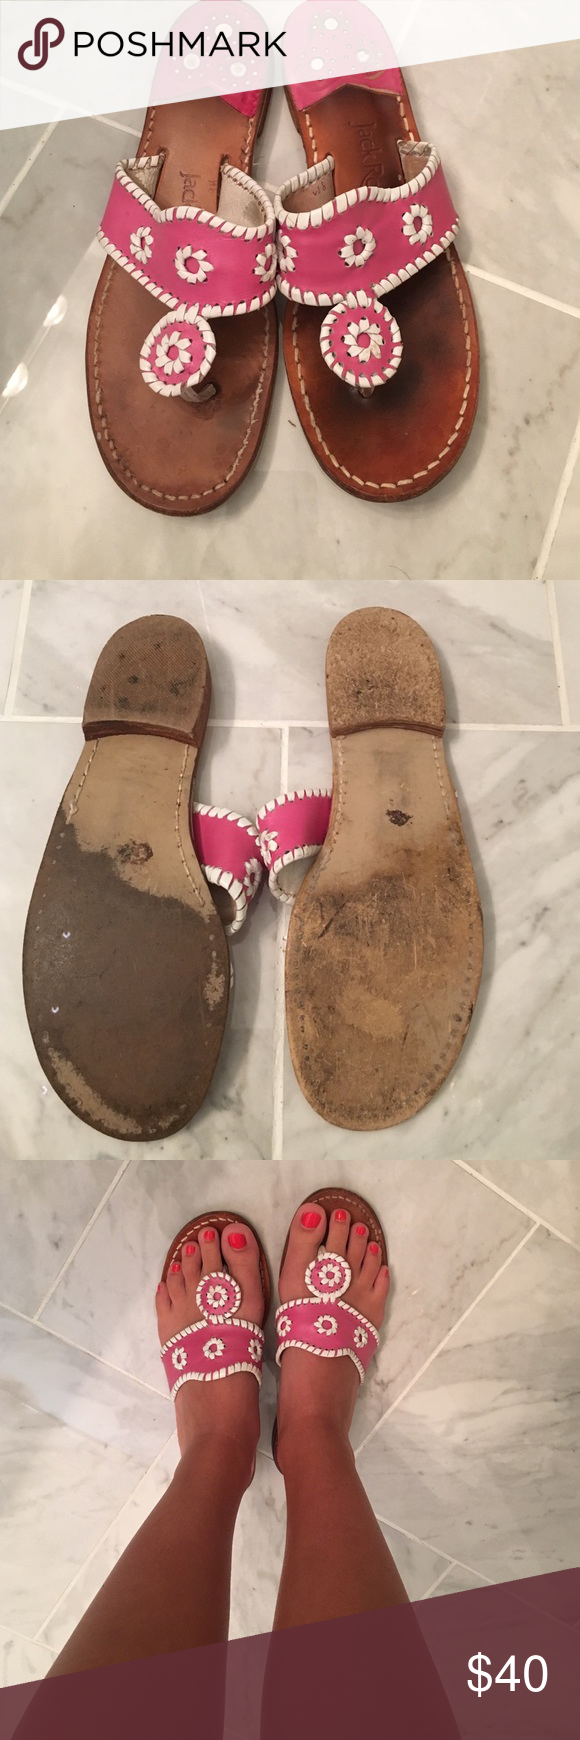 Pink Jack Rogers well worn, but lots of life left in them! right one slightly larger than left. Jack Rogers Shoes Sandals